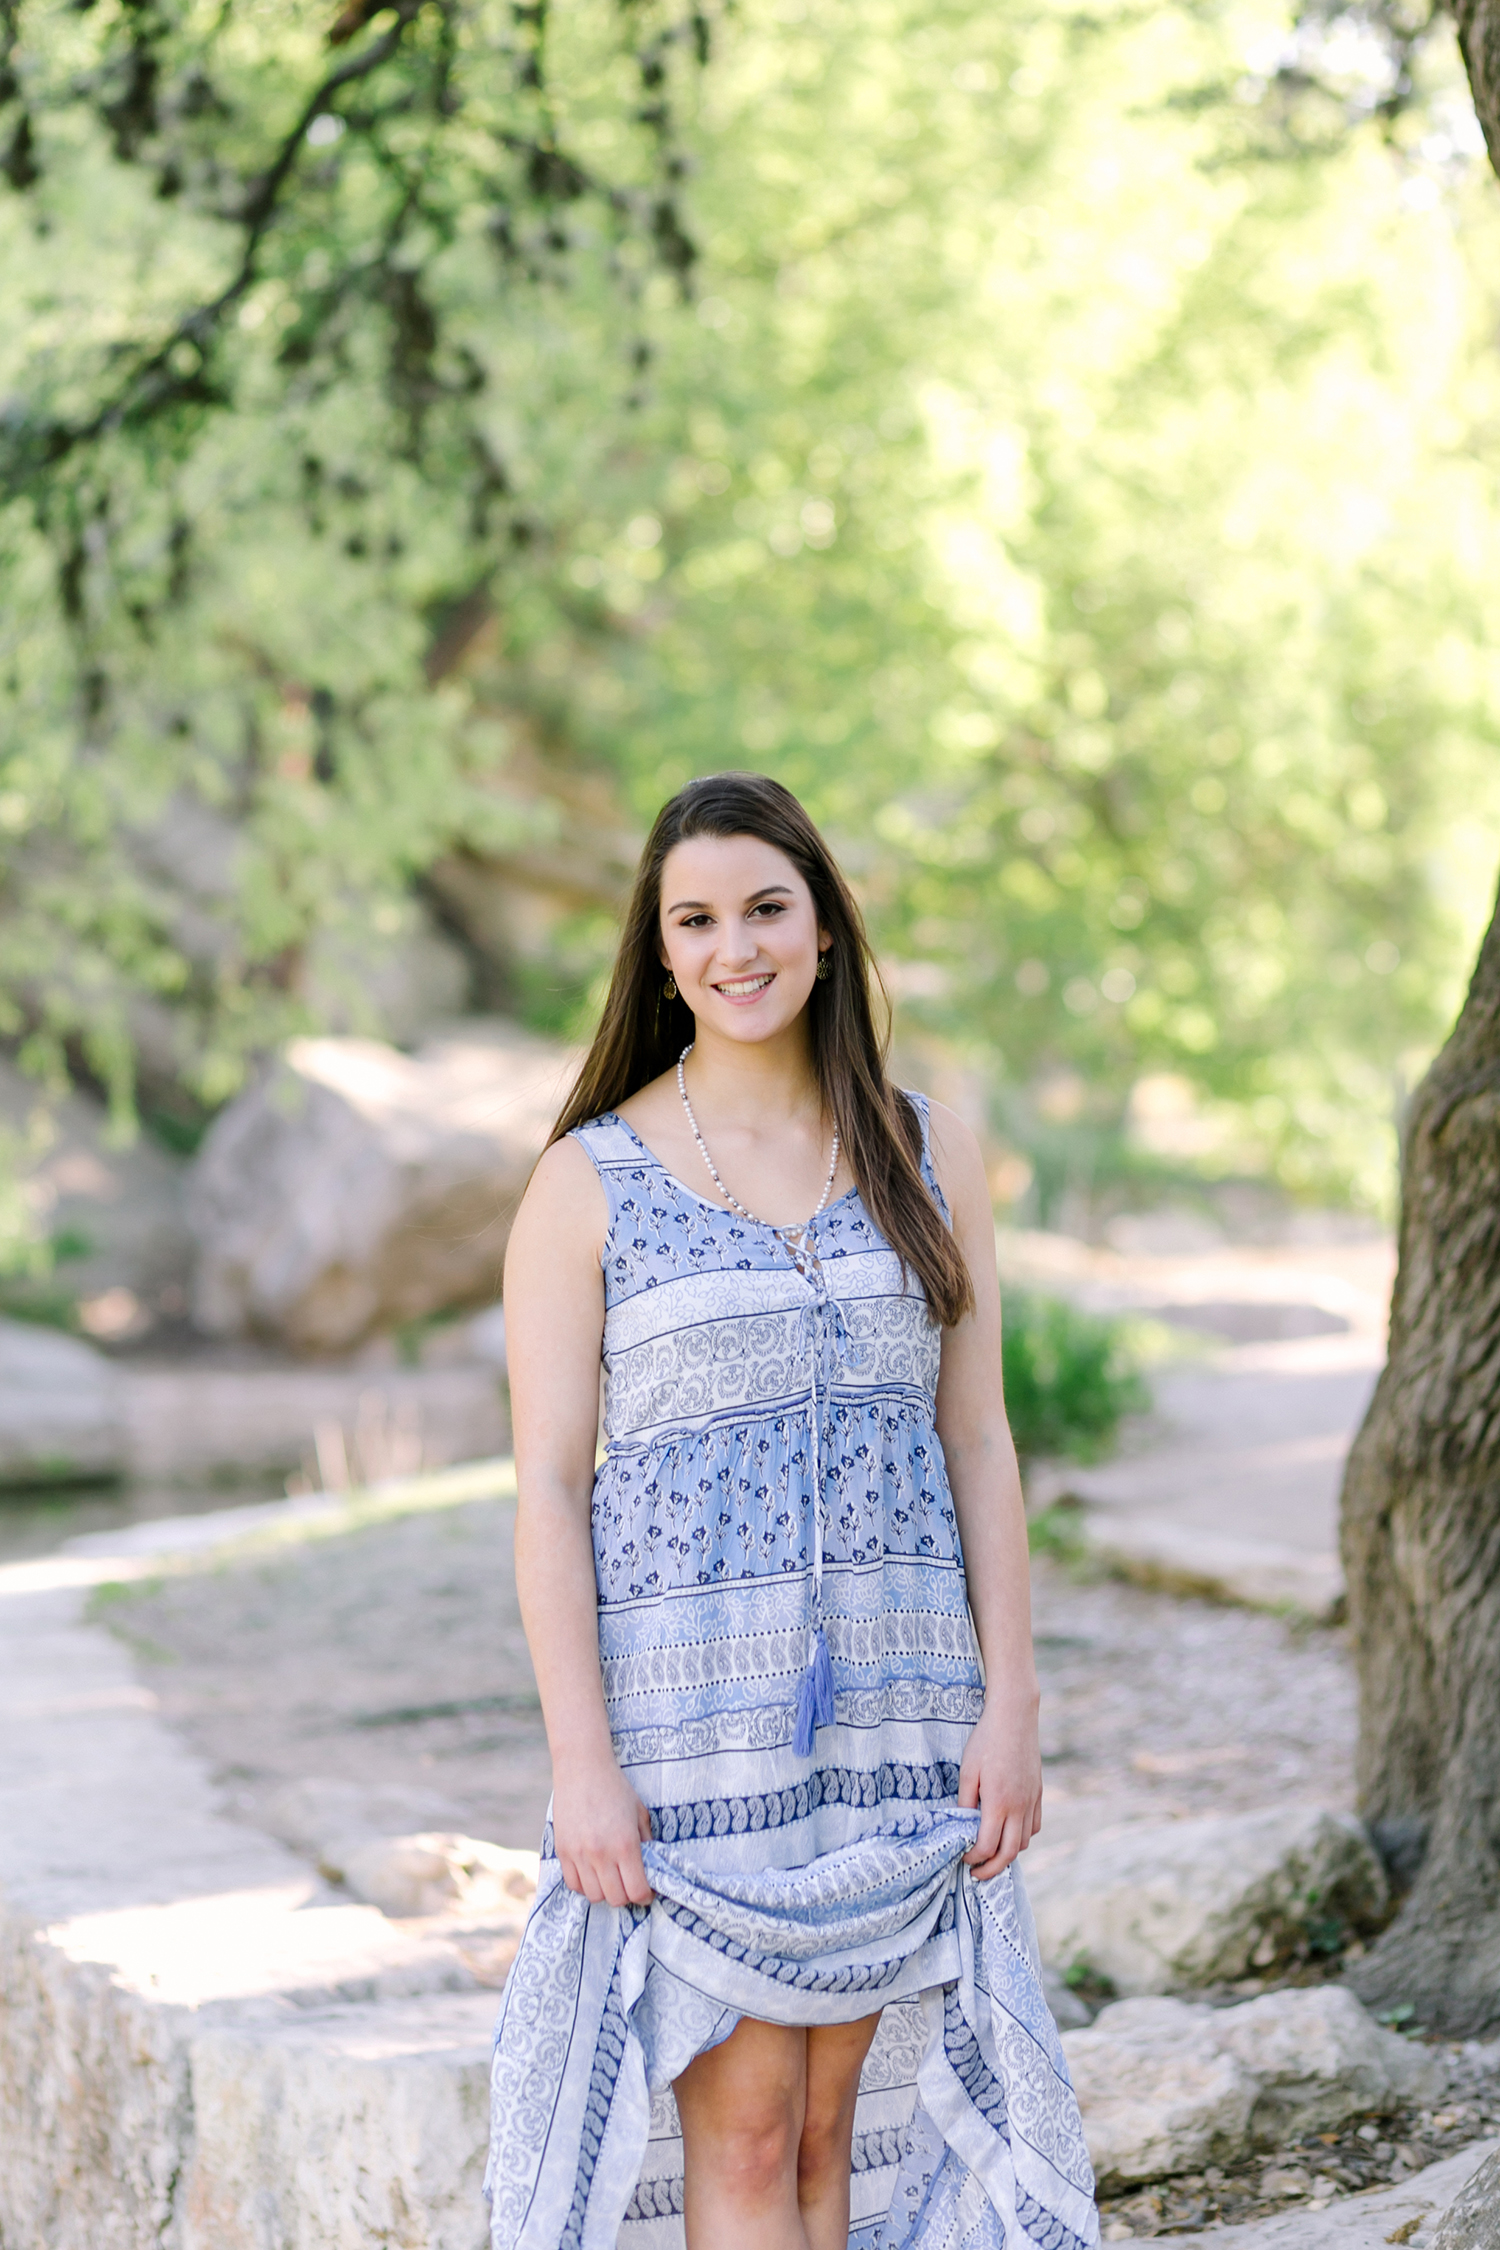 austin-tx-senior-portrait-photographer-03.jpg